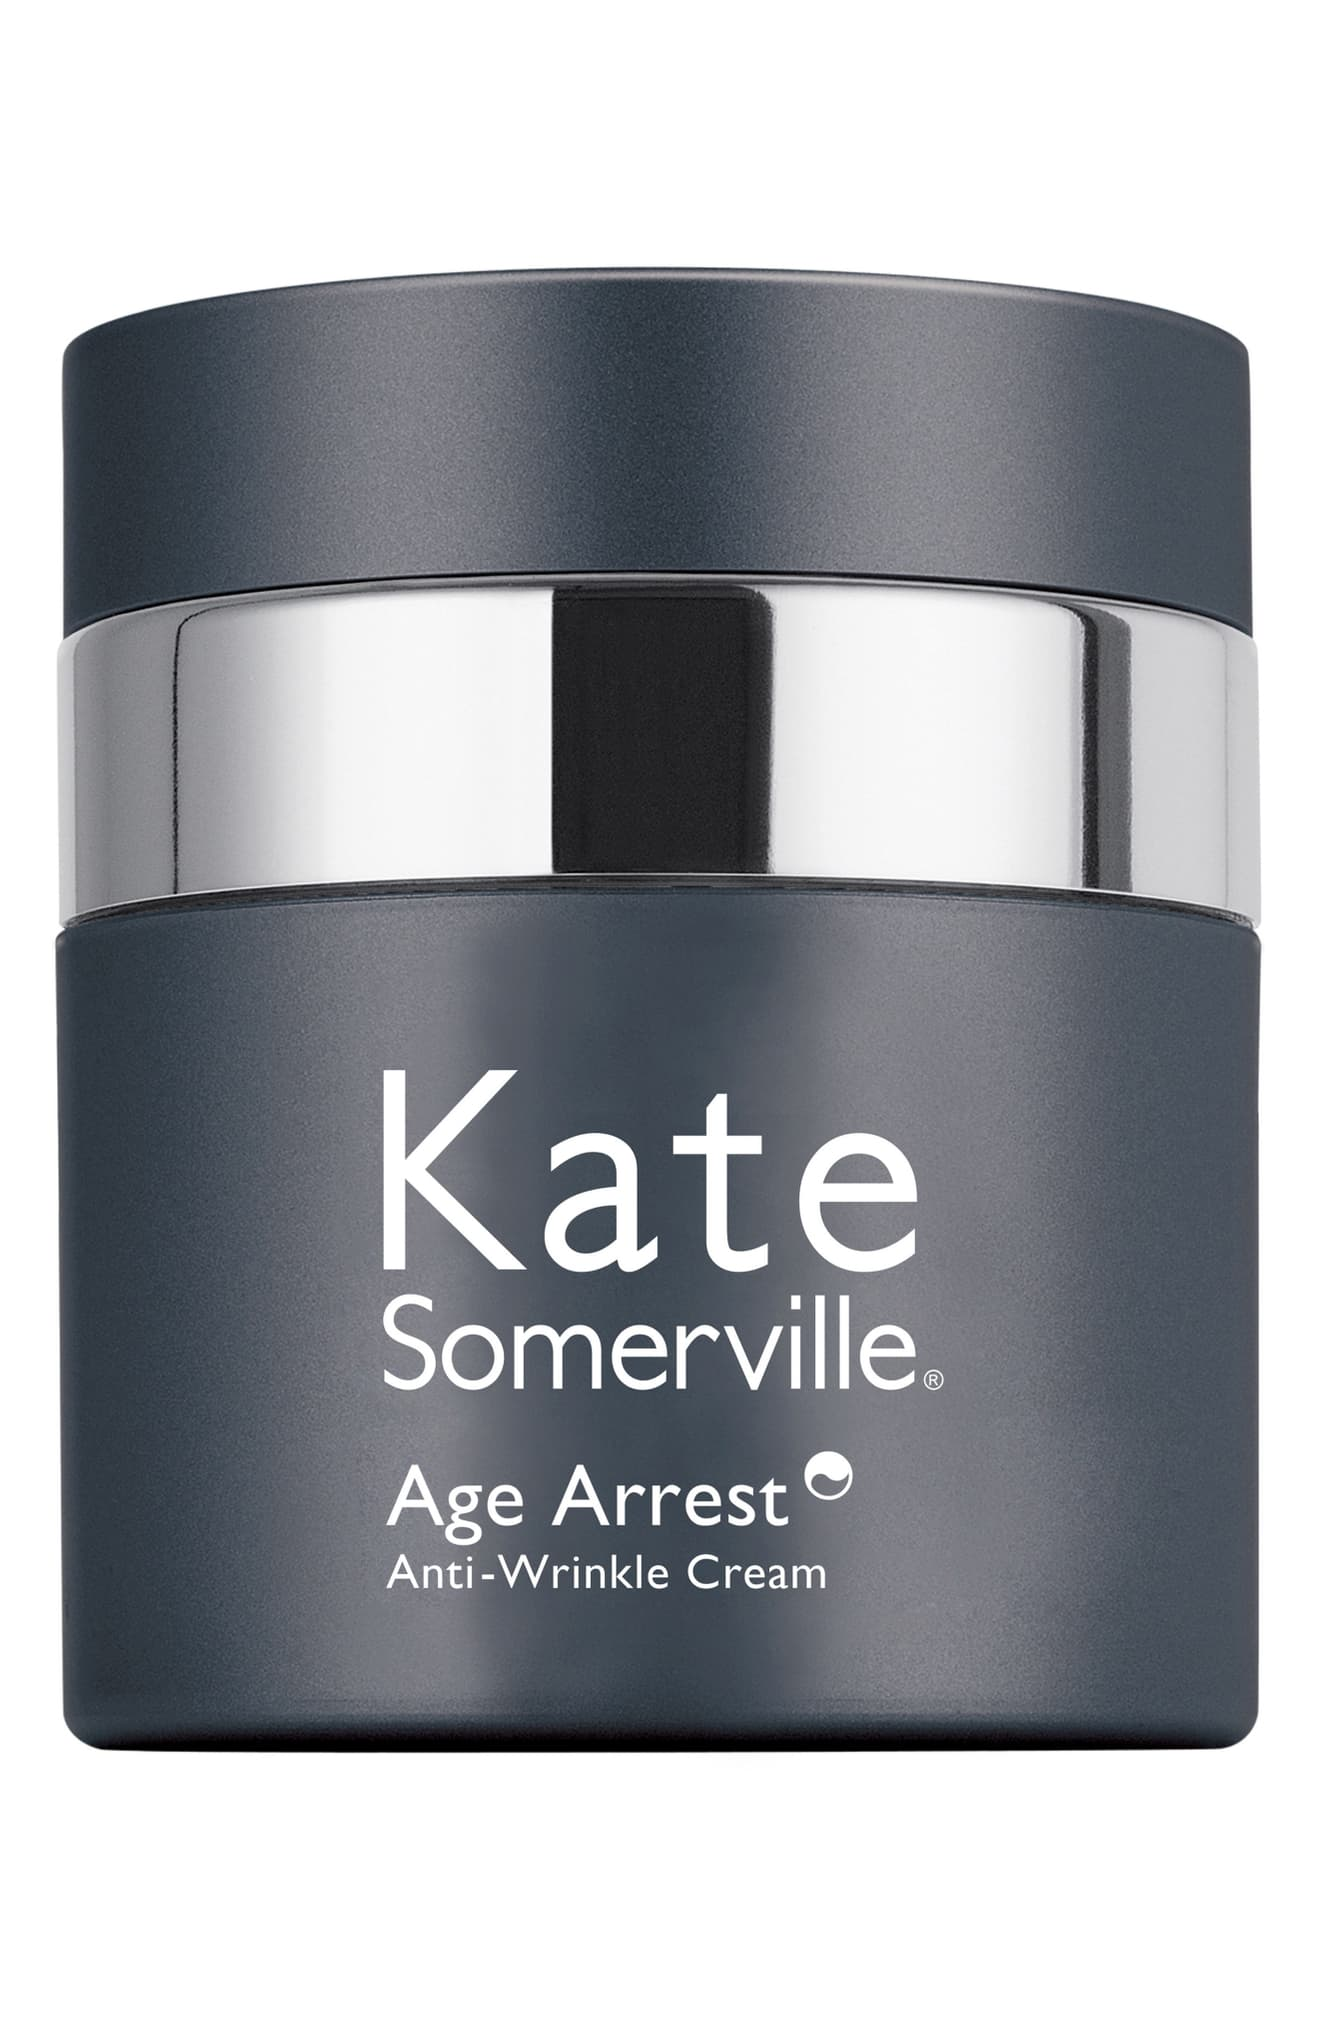 KATE SOMERVILLE® Age Arrest Wrinkle Cream